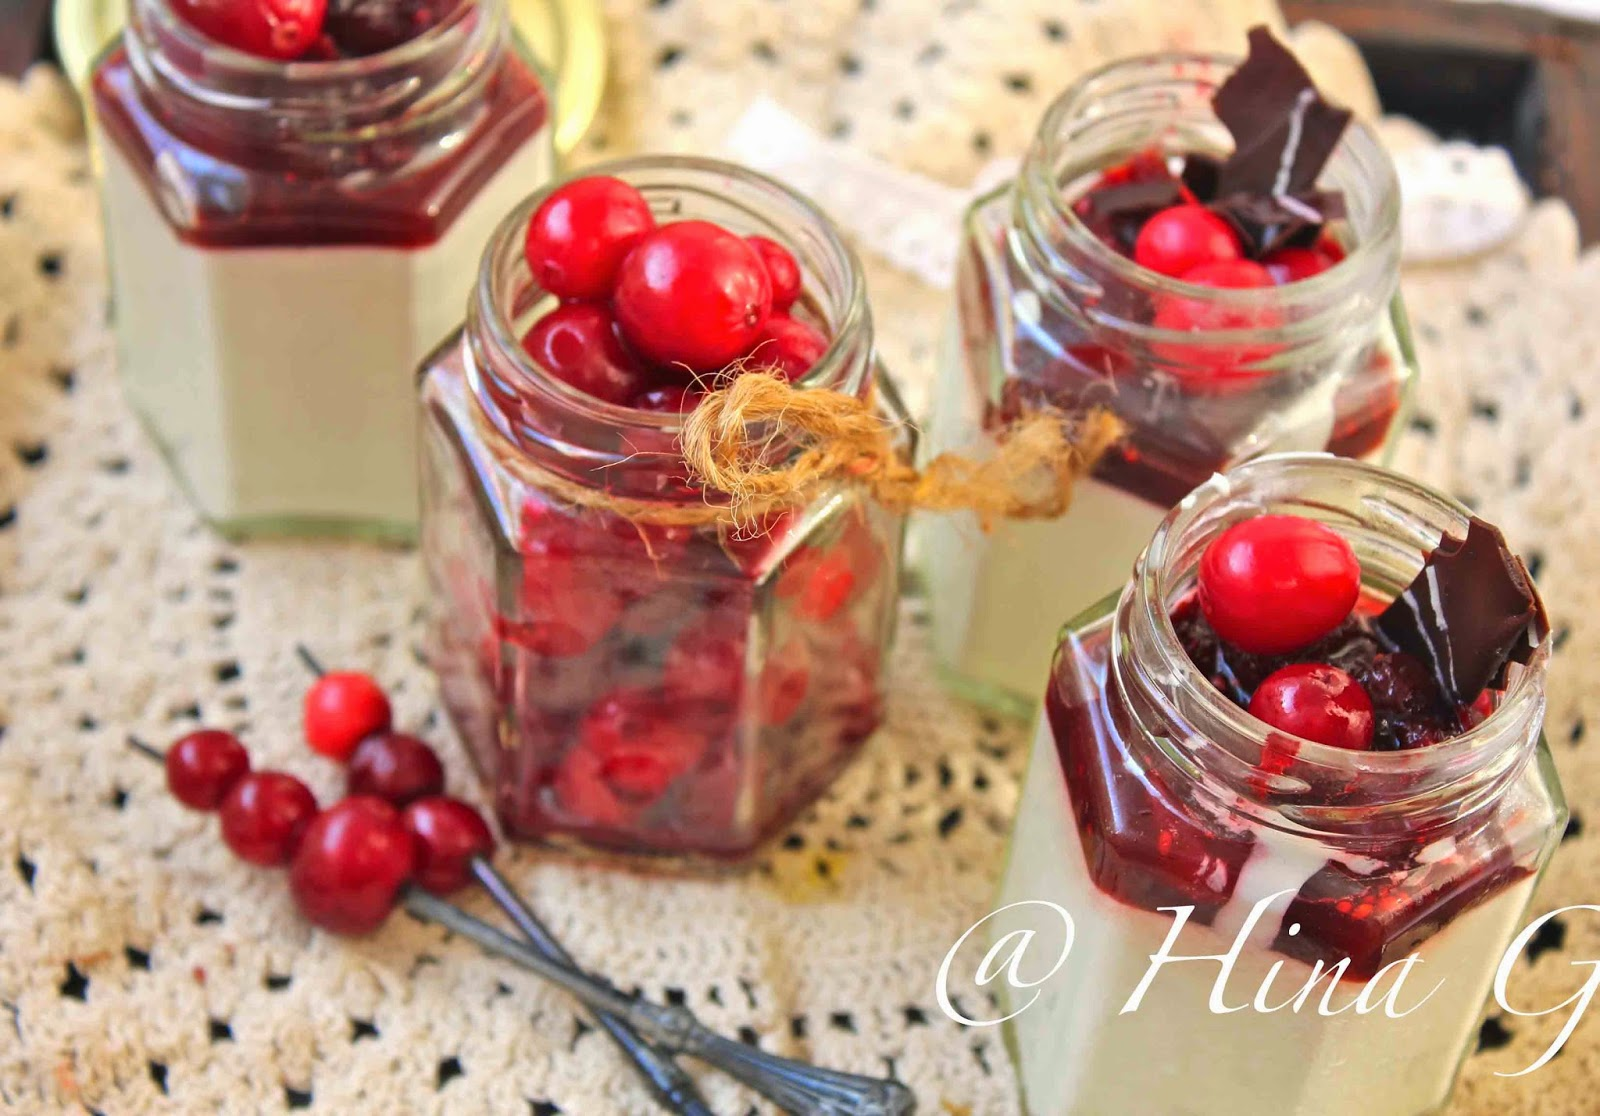 Eggless White Chocolate Mousse Recipe with Balsamic Cranberry Glaze